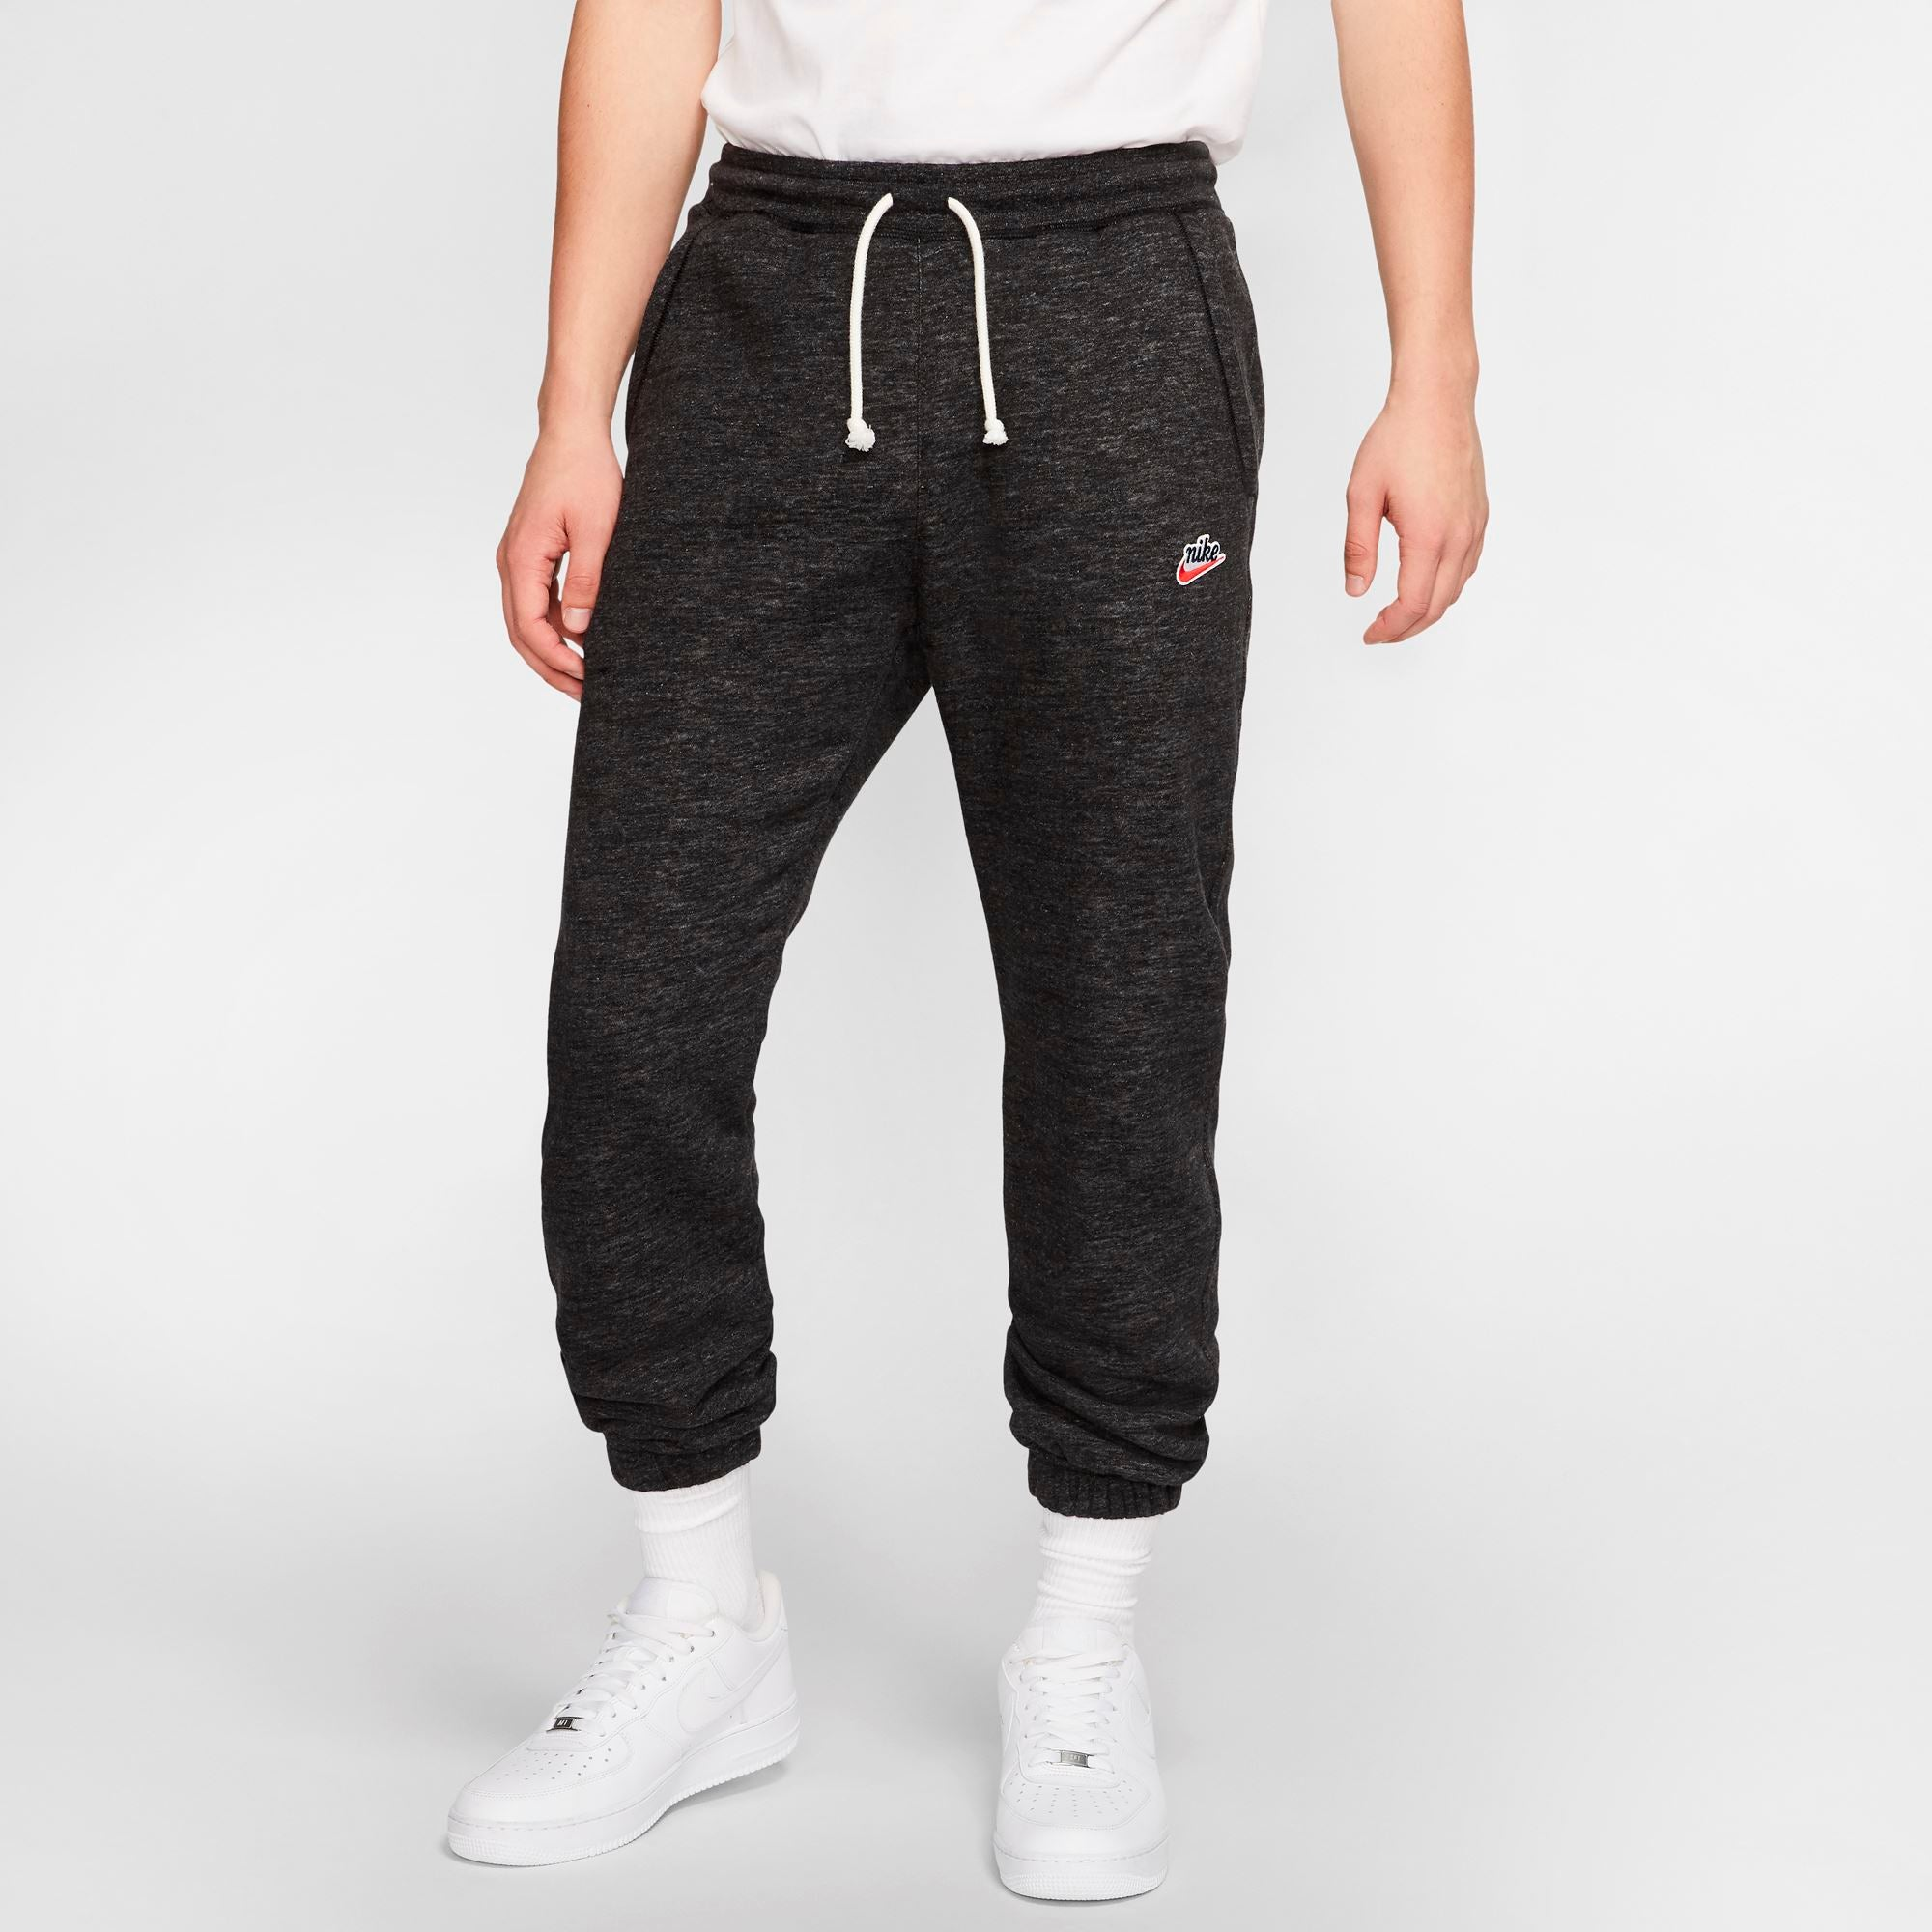 Nike Mens Heritage Pants - Black/Htr/Sail SP-ApparelFleece-Mens Nike